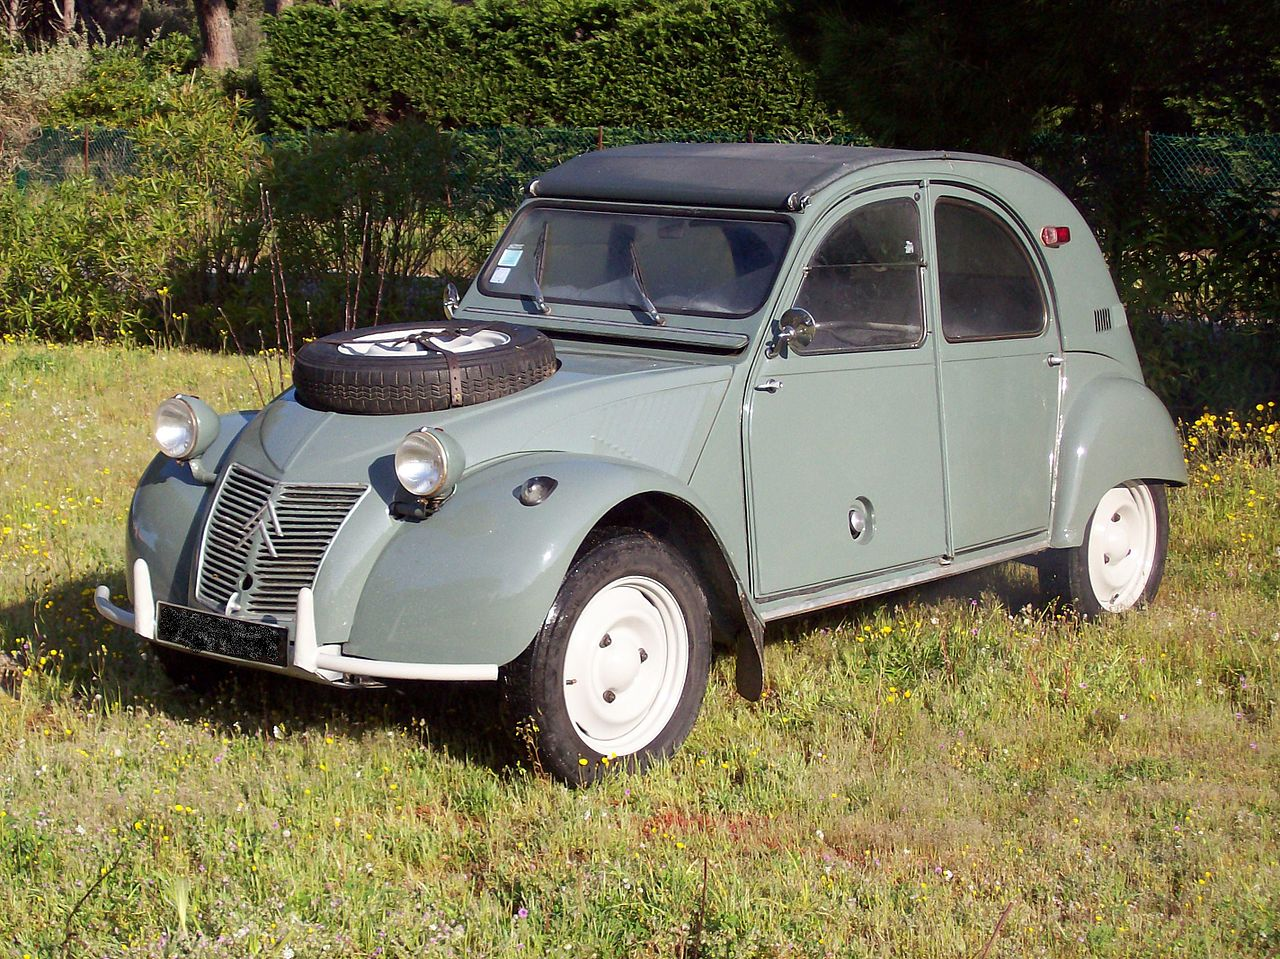 Citroën 2CV Sahara has a spare tyre mounted on the bonnet/hood Land Rover style. (Picture courtesy Wikipedia).